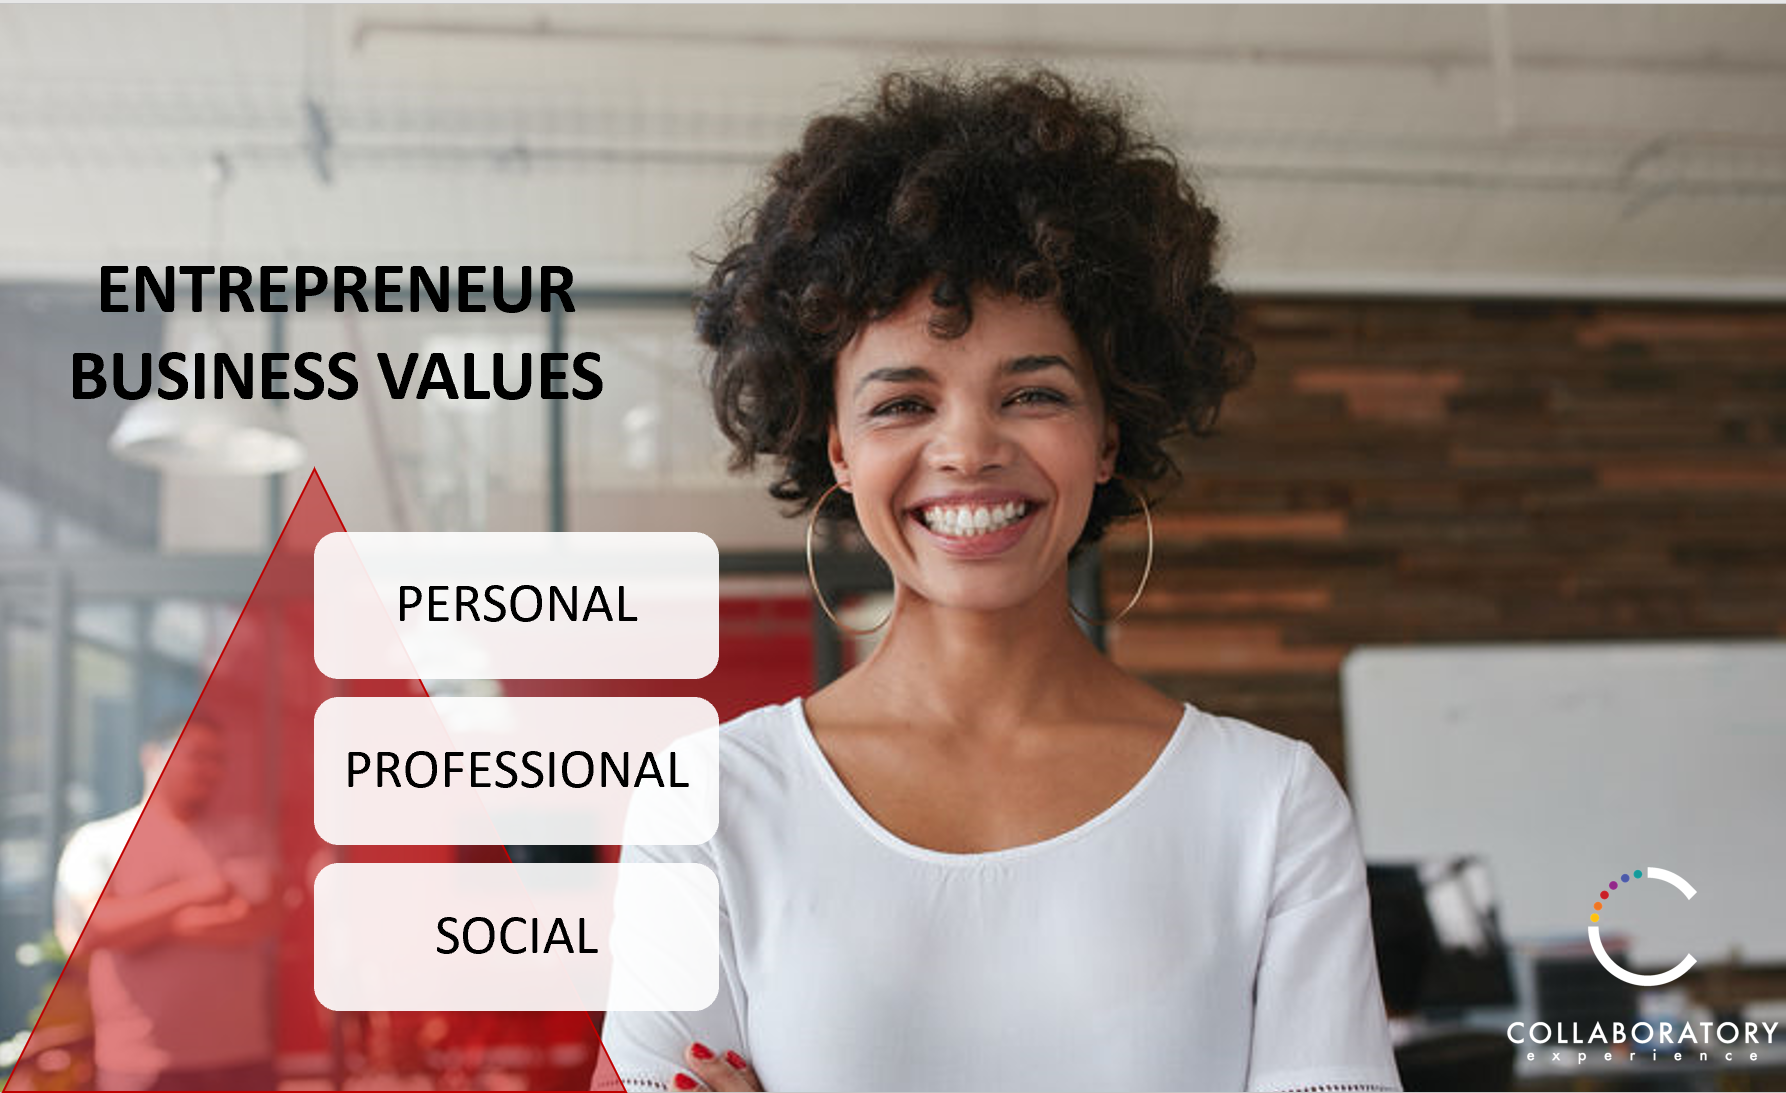 Entrepreneur Business Values_Blog Image.PNG